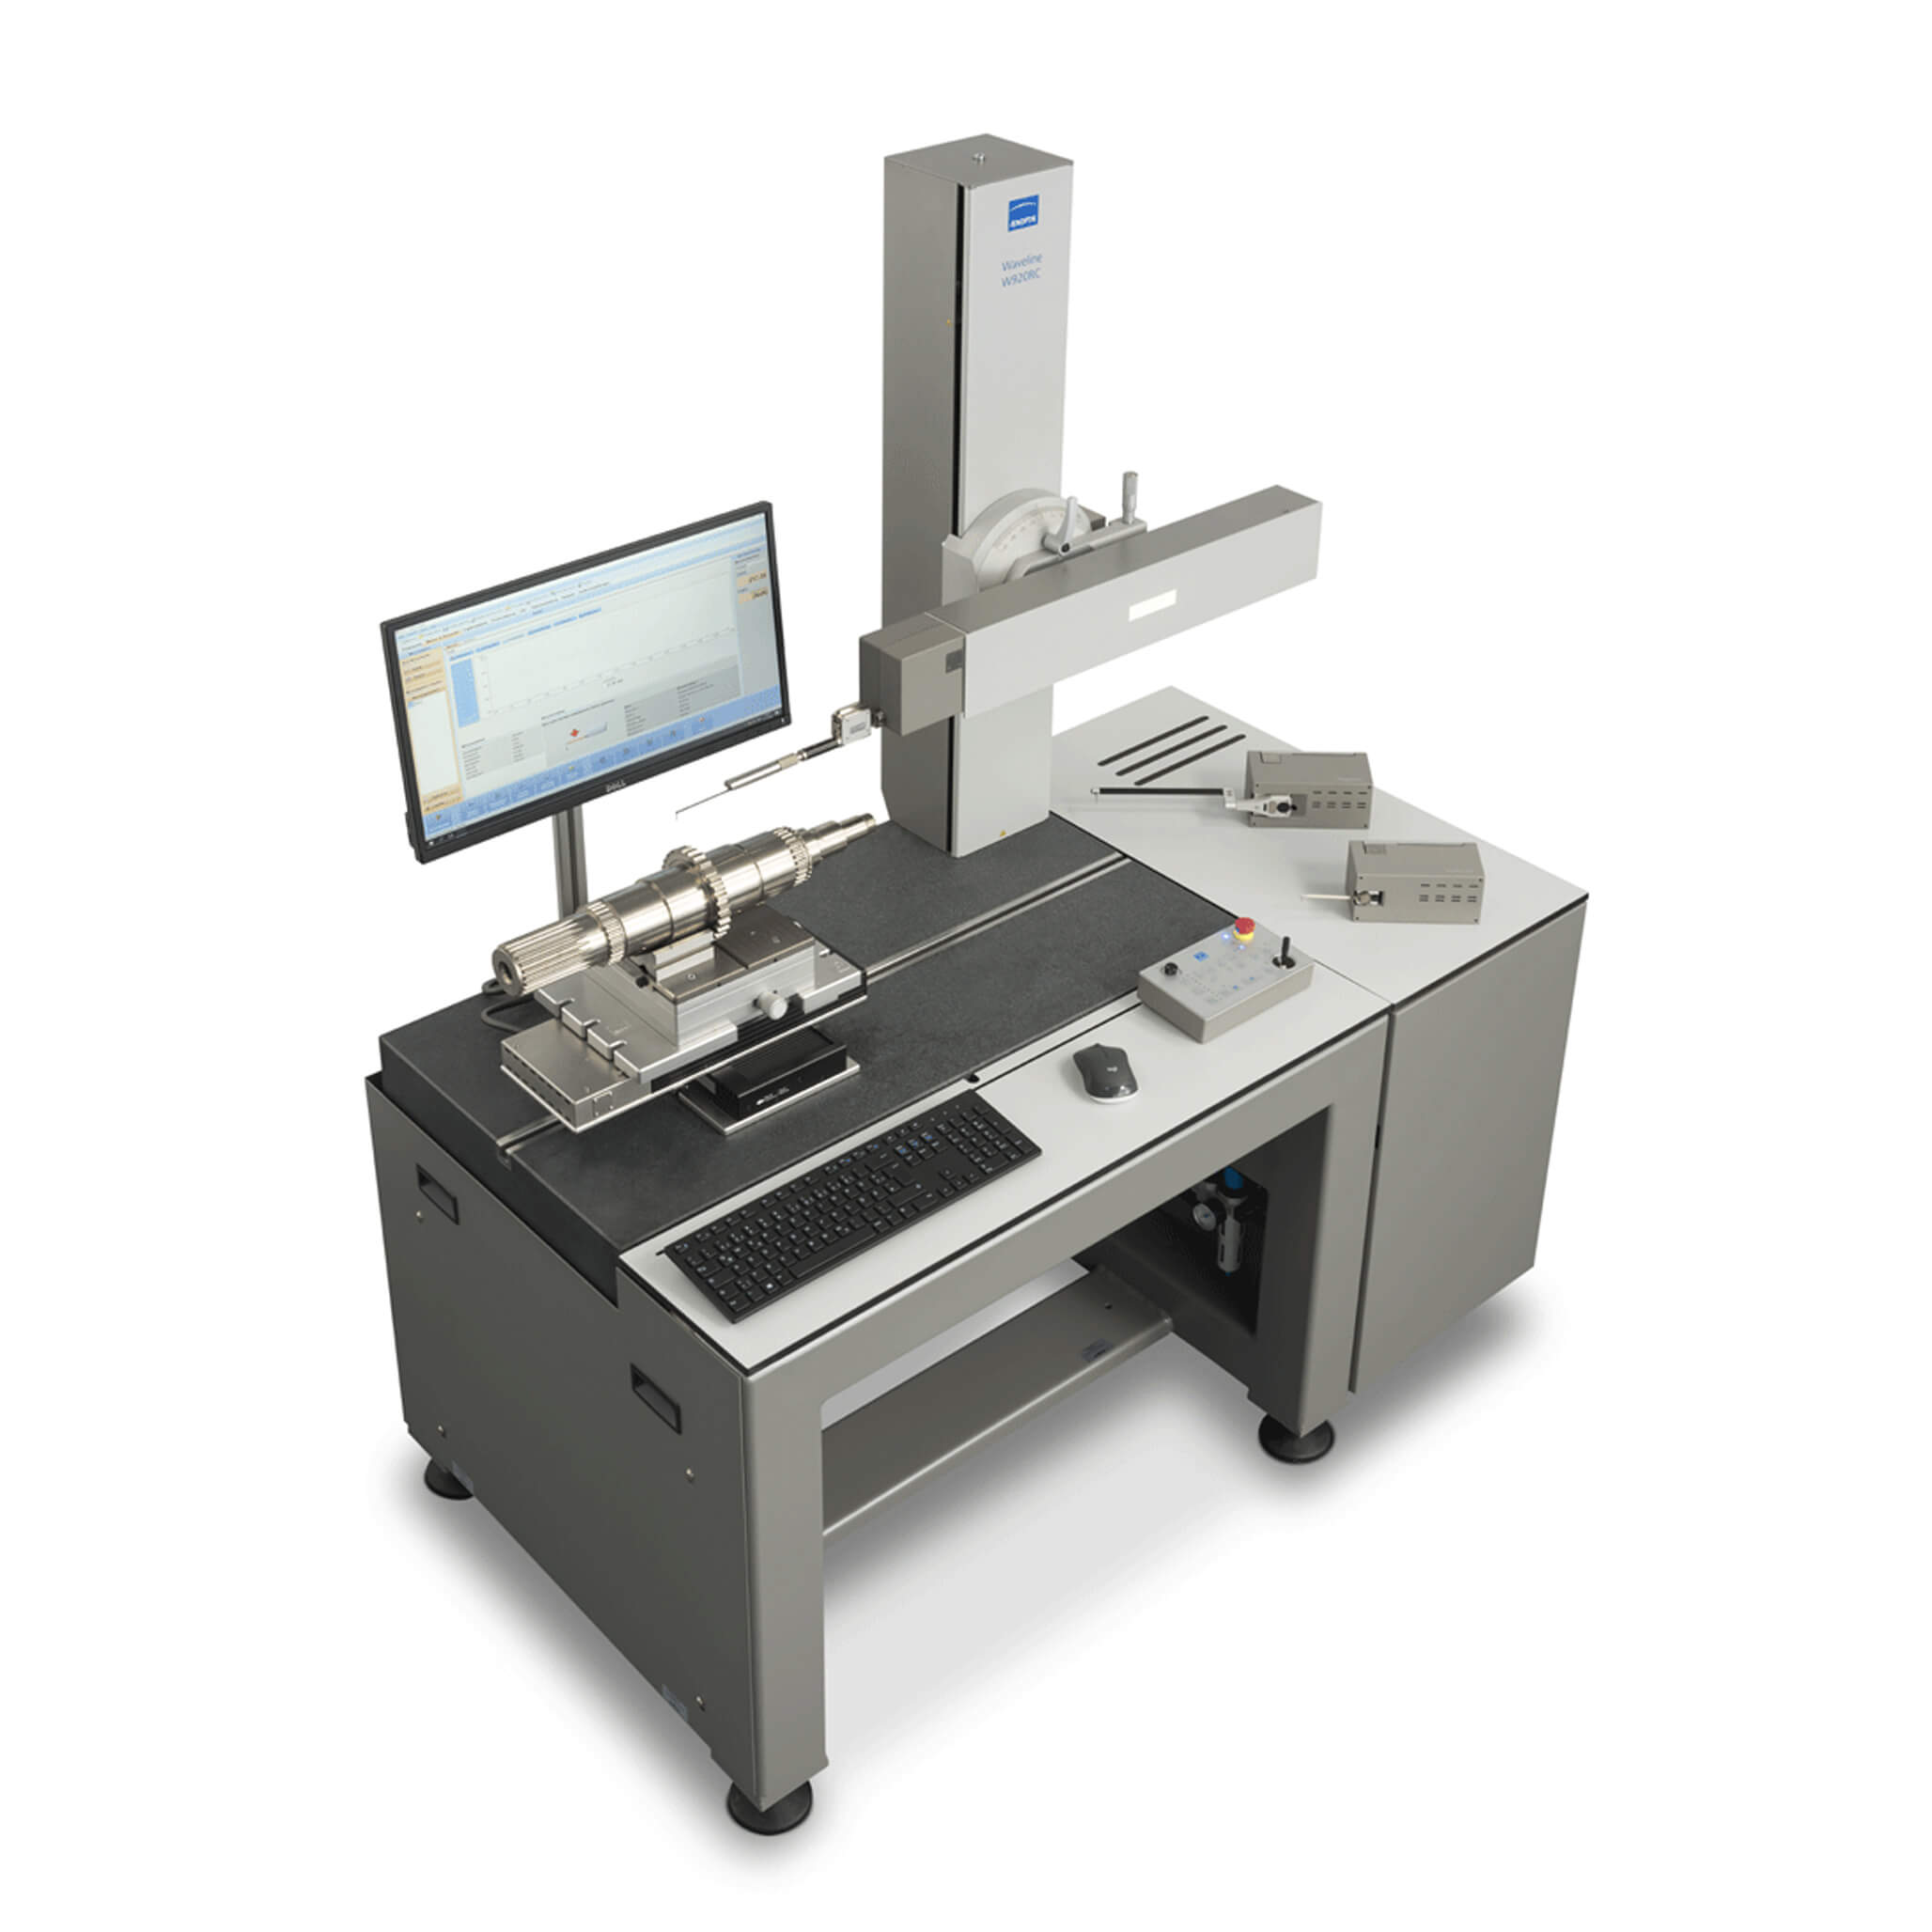 W900 roughness and contour measurement system